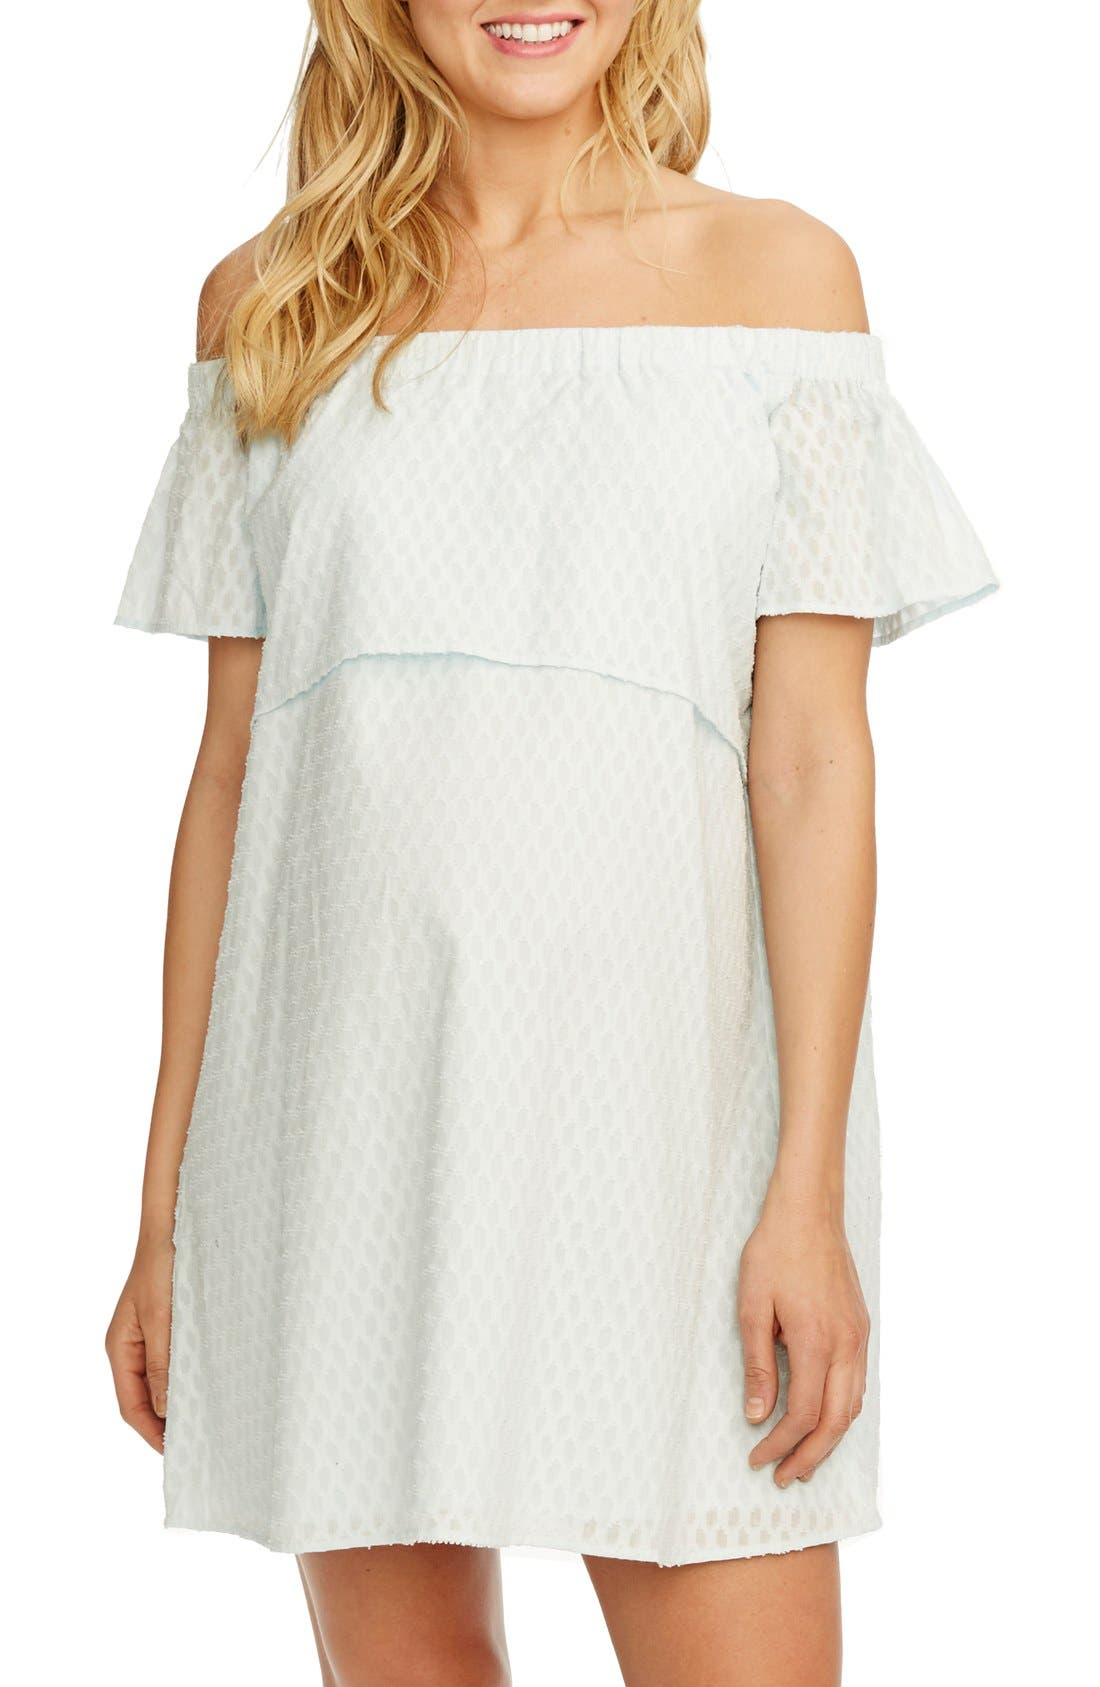 'Camille' Off the Shoulder Maternity Dress,                         Main,                         color, Ice Blue